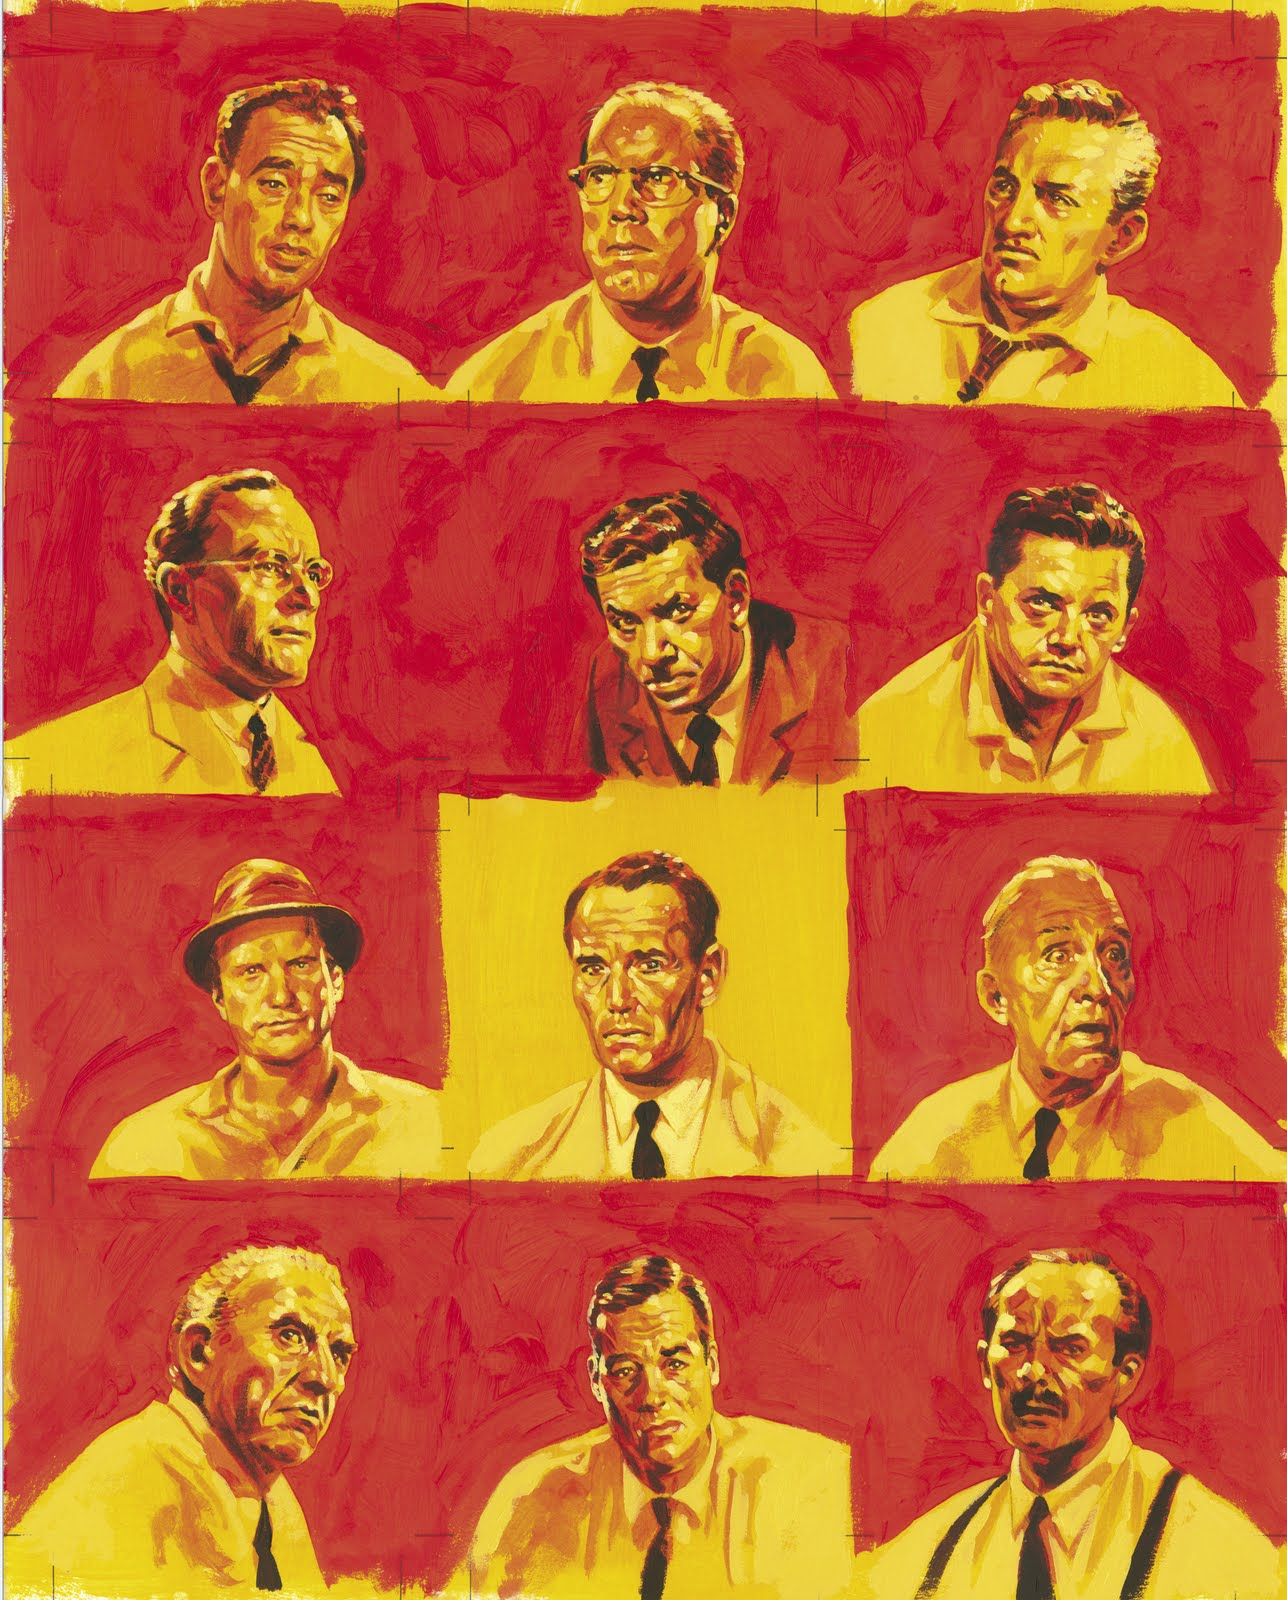 an analysis of the positions taken based on prejudice in the twelve angry men